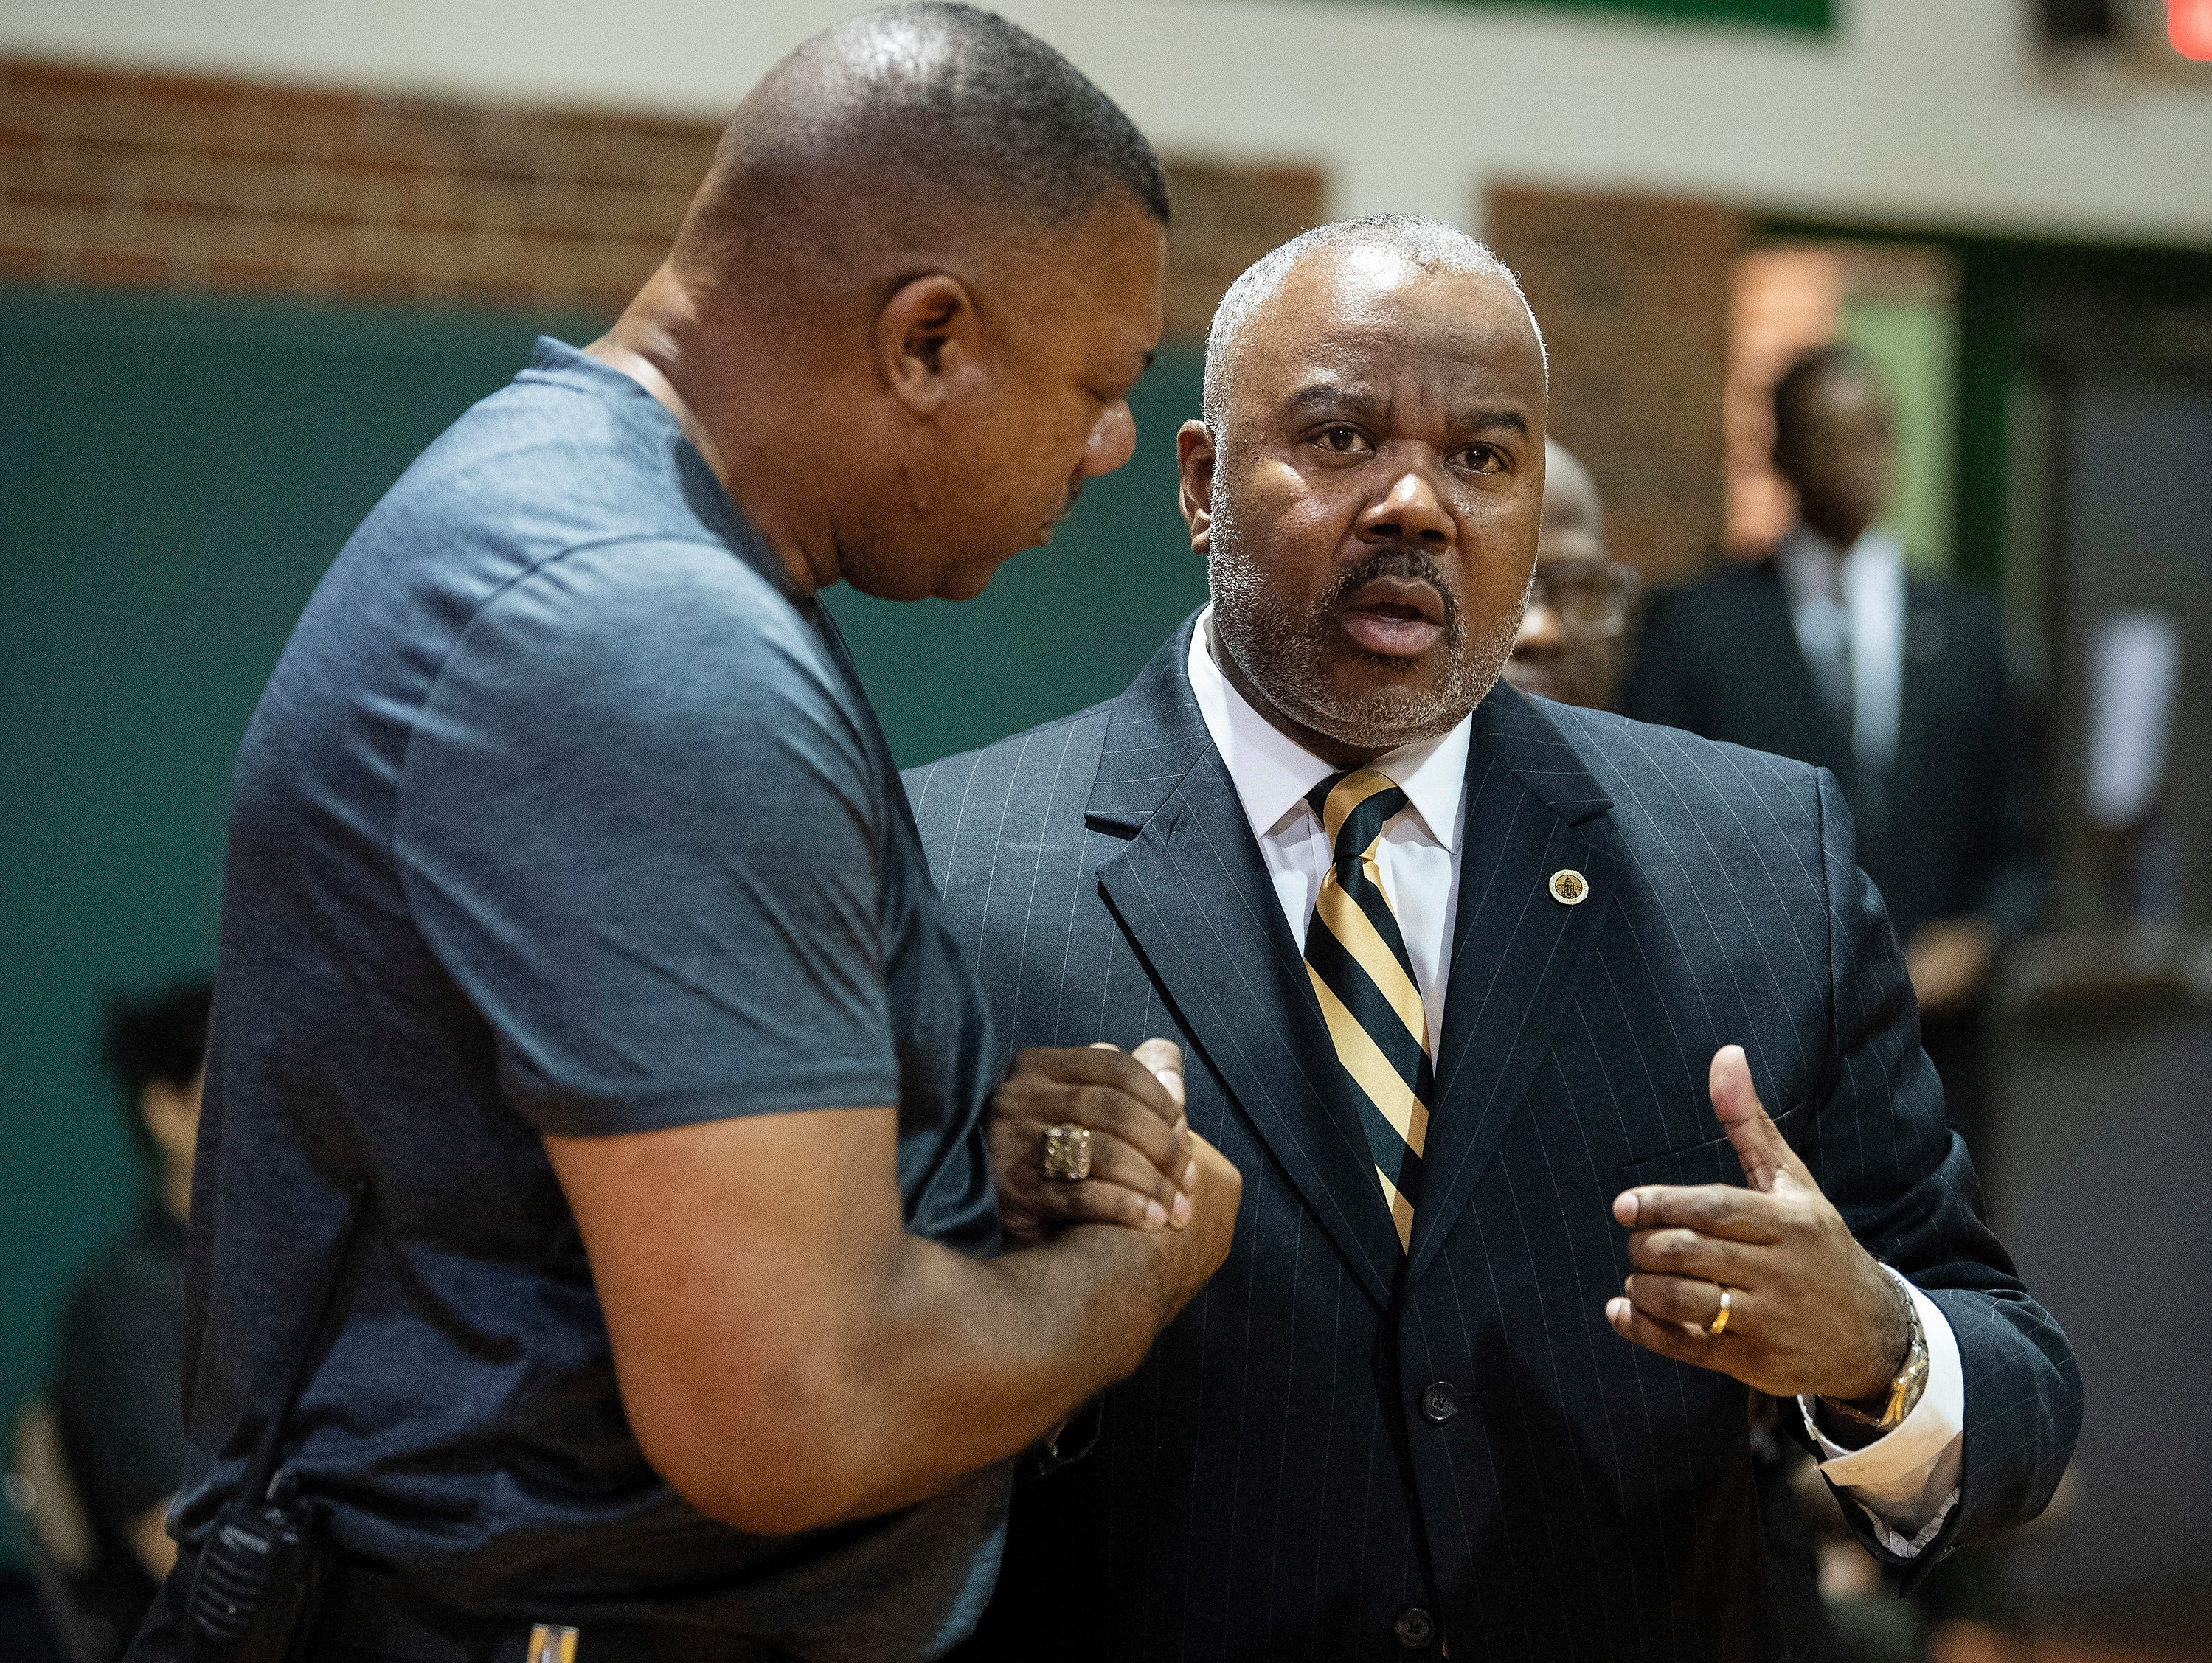 Alabama State University President Quinton Ross, right, talks with Jeff Davis High School Principal Bobby Abrams as the ASU President's Tour visits the school in Montgomery, Ala., on Friday April 12, 2019.